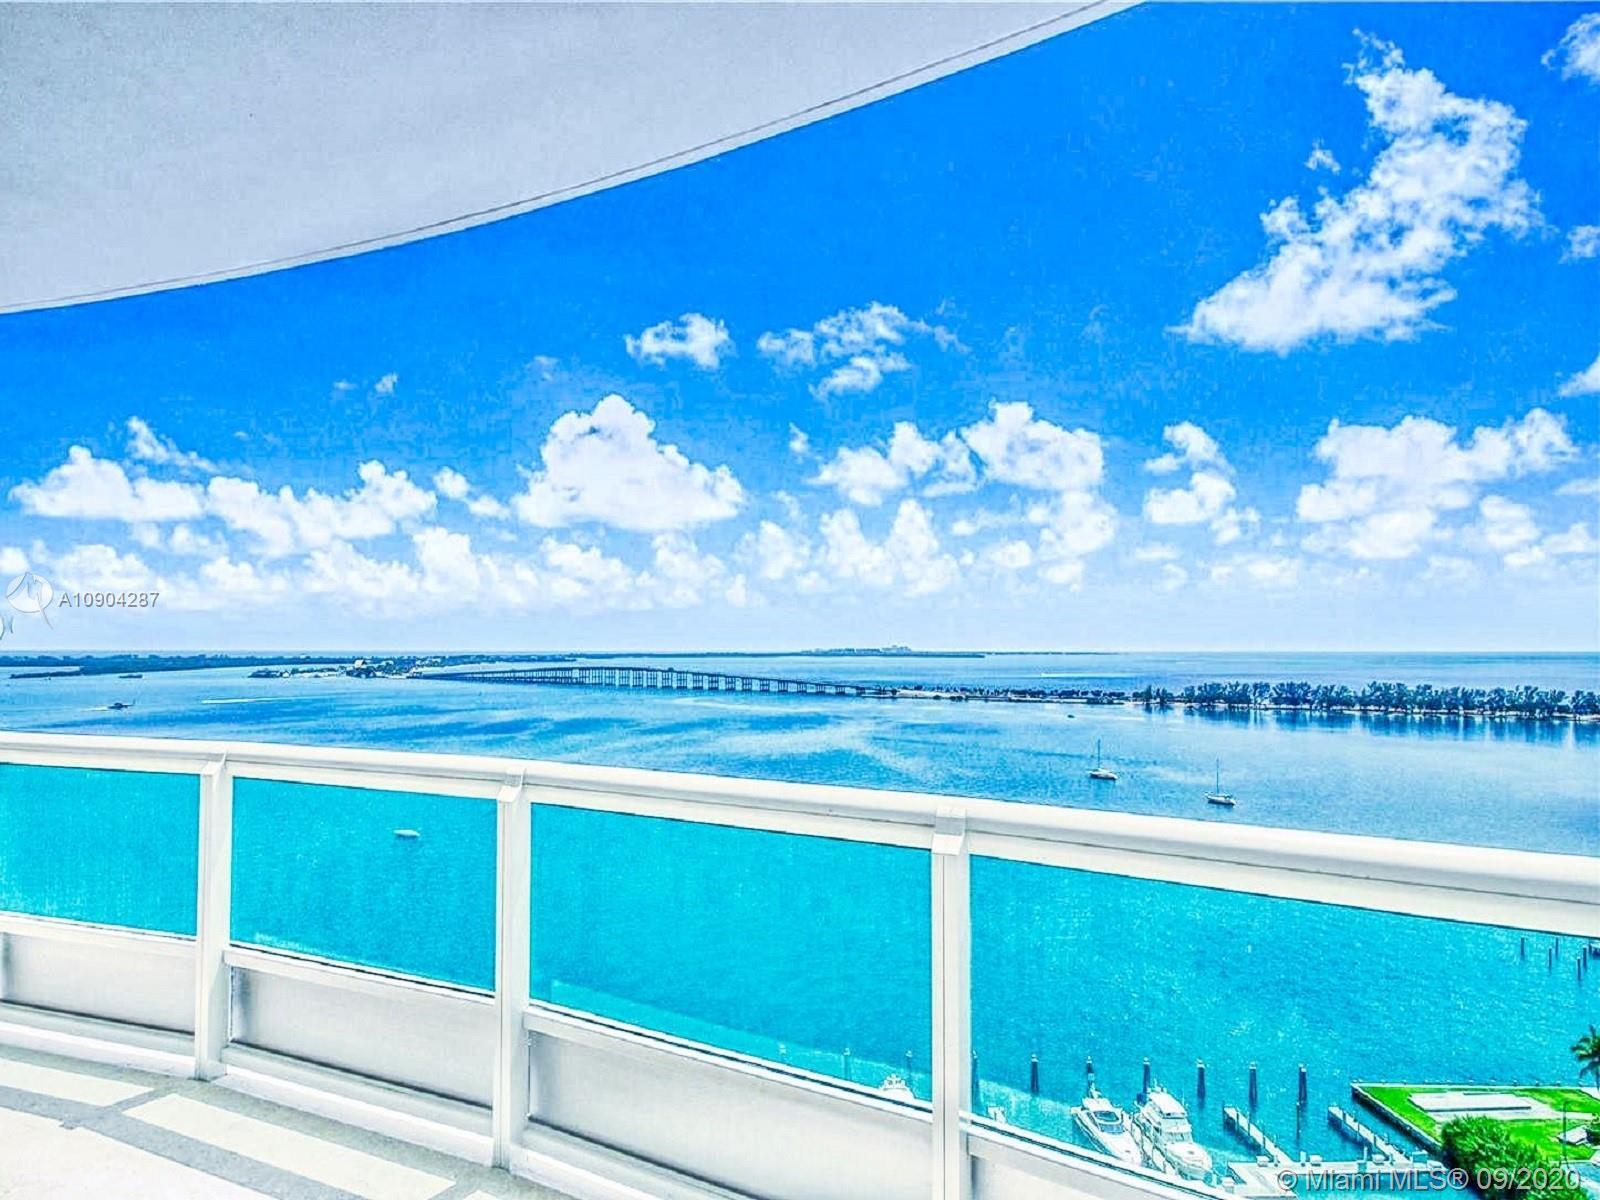 Santa Maria is one of Miami's luxurious residences and it offers its residents a luxury lifestyle de